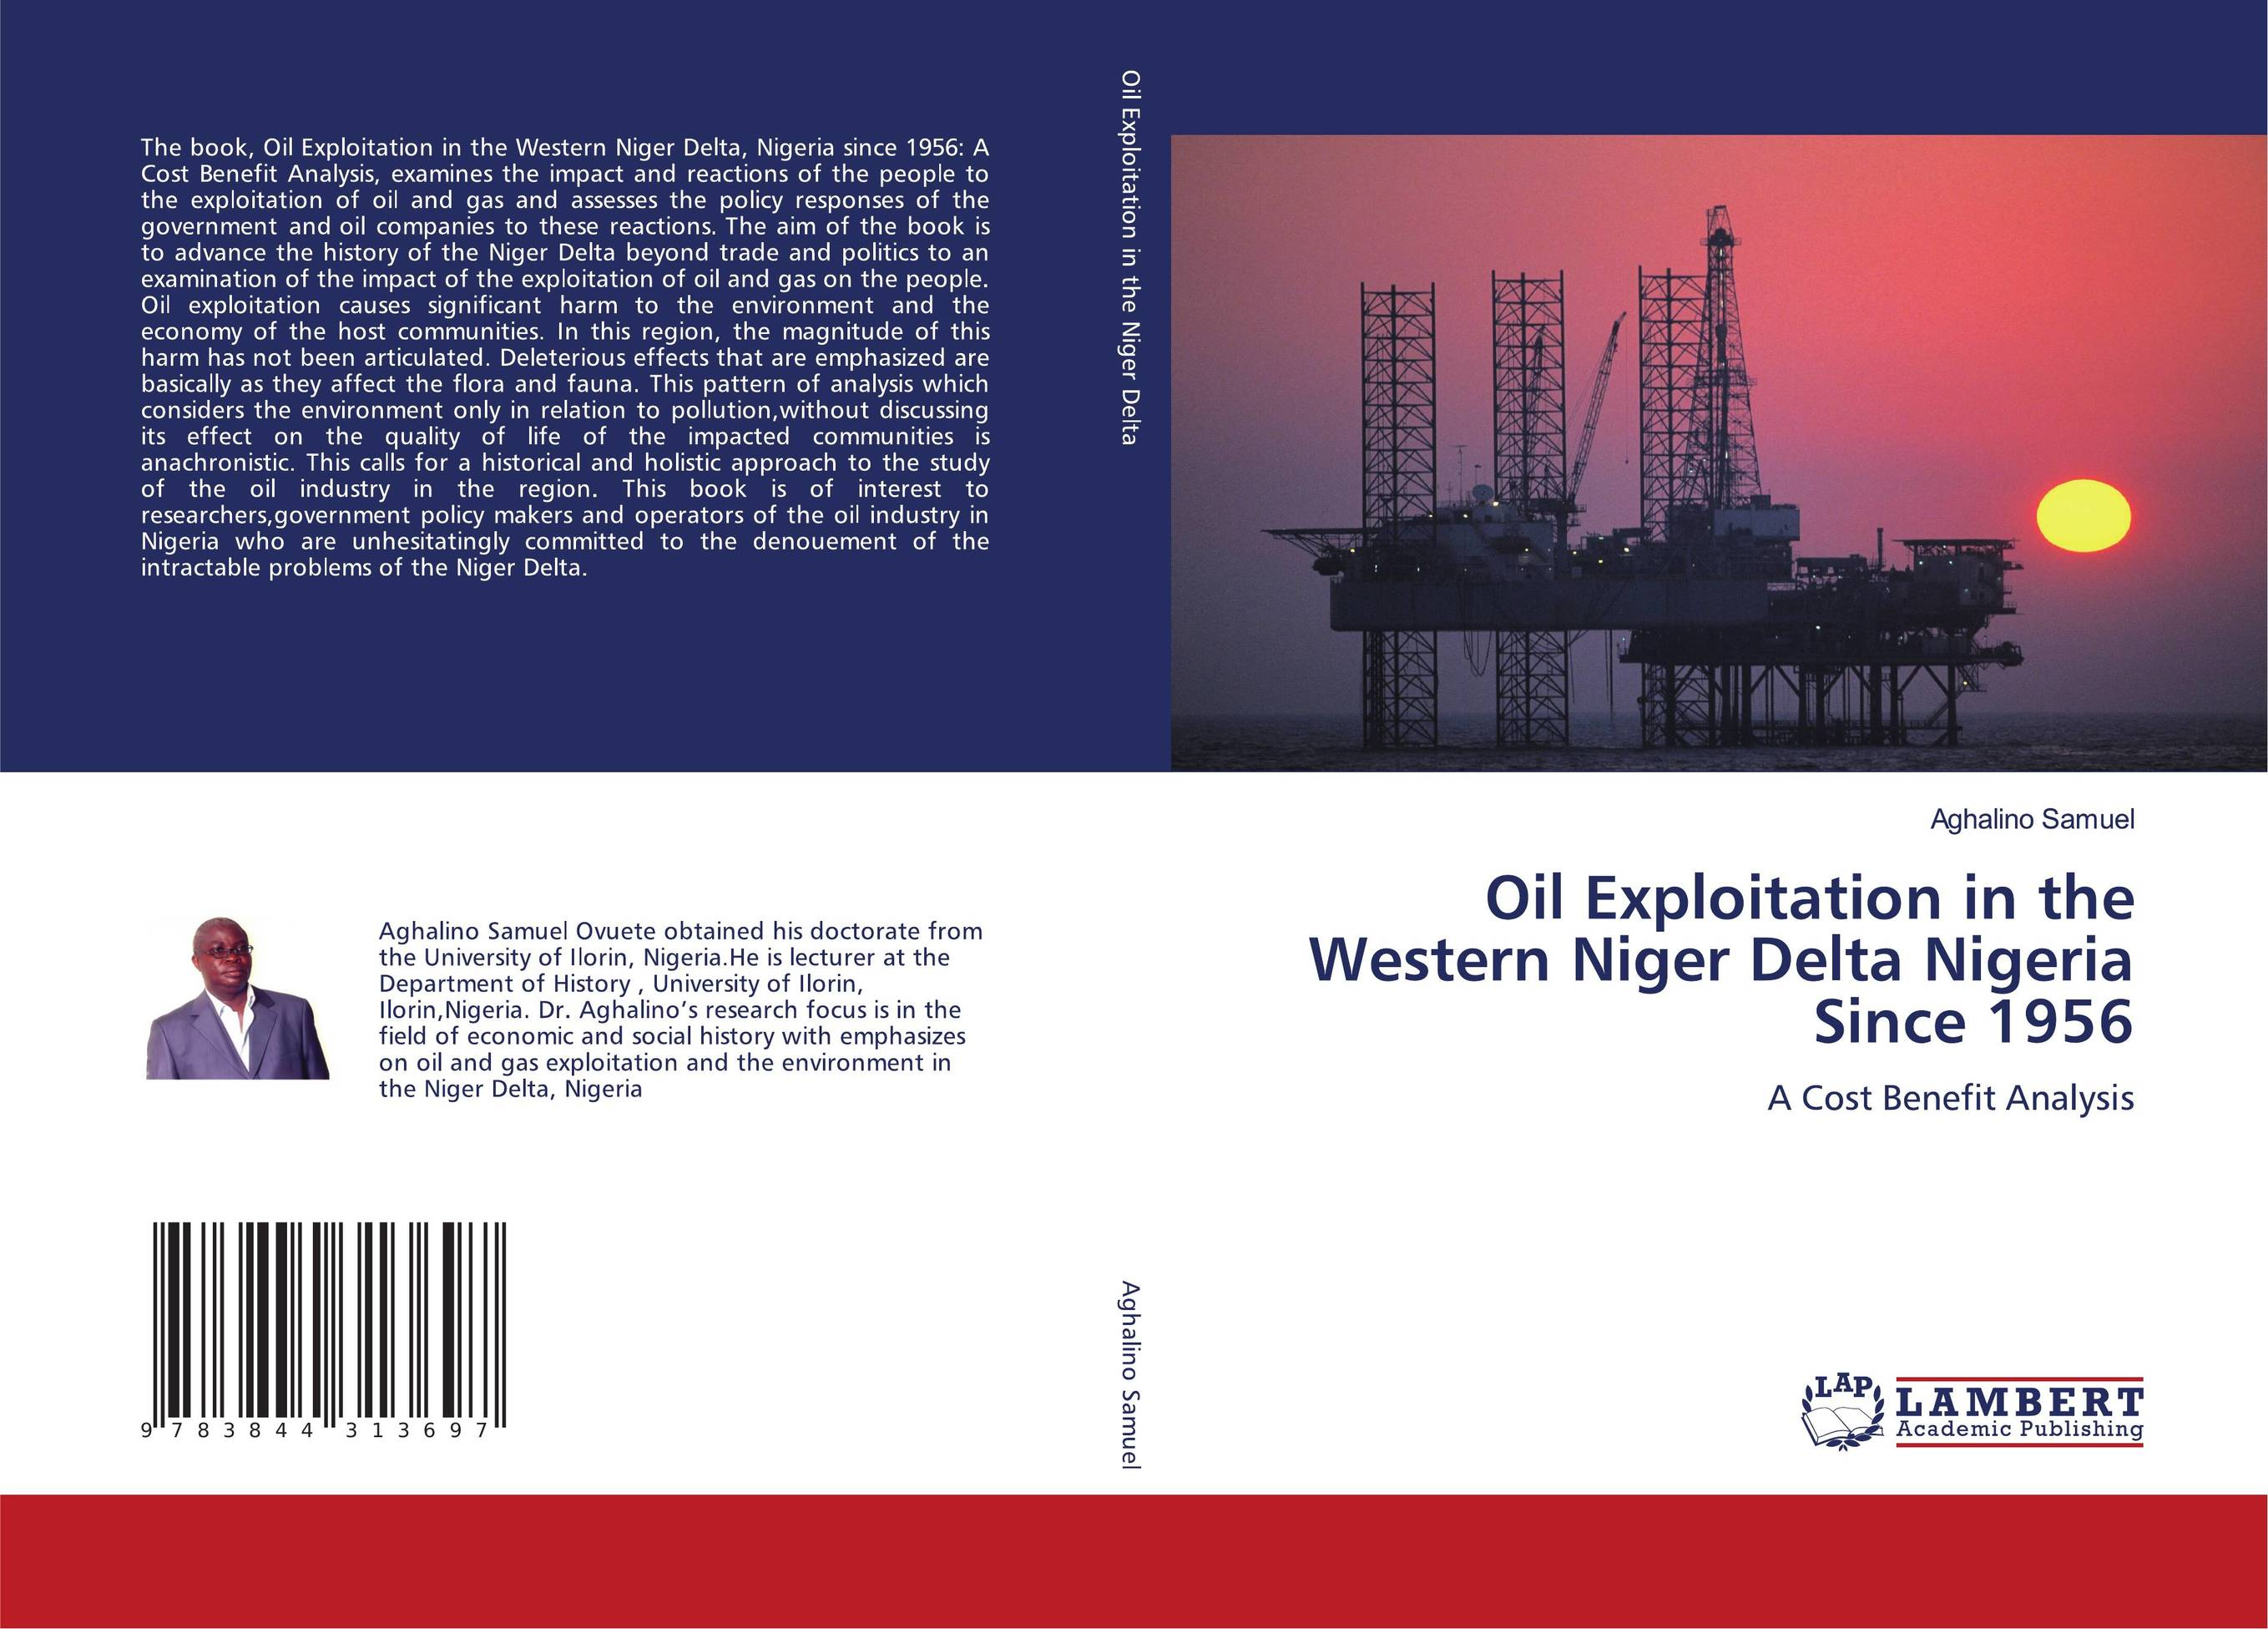 article analysis oil industry 2018 oil and gas industry outlook download the pdf john england's take on 2018 it's been an interesting 2017 as the news cycle has been dominated by politics, natural disasters, and tense geopolitical challenges also, the oil market is still challenged by high stocks and sluggish prices.